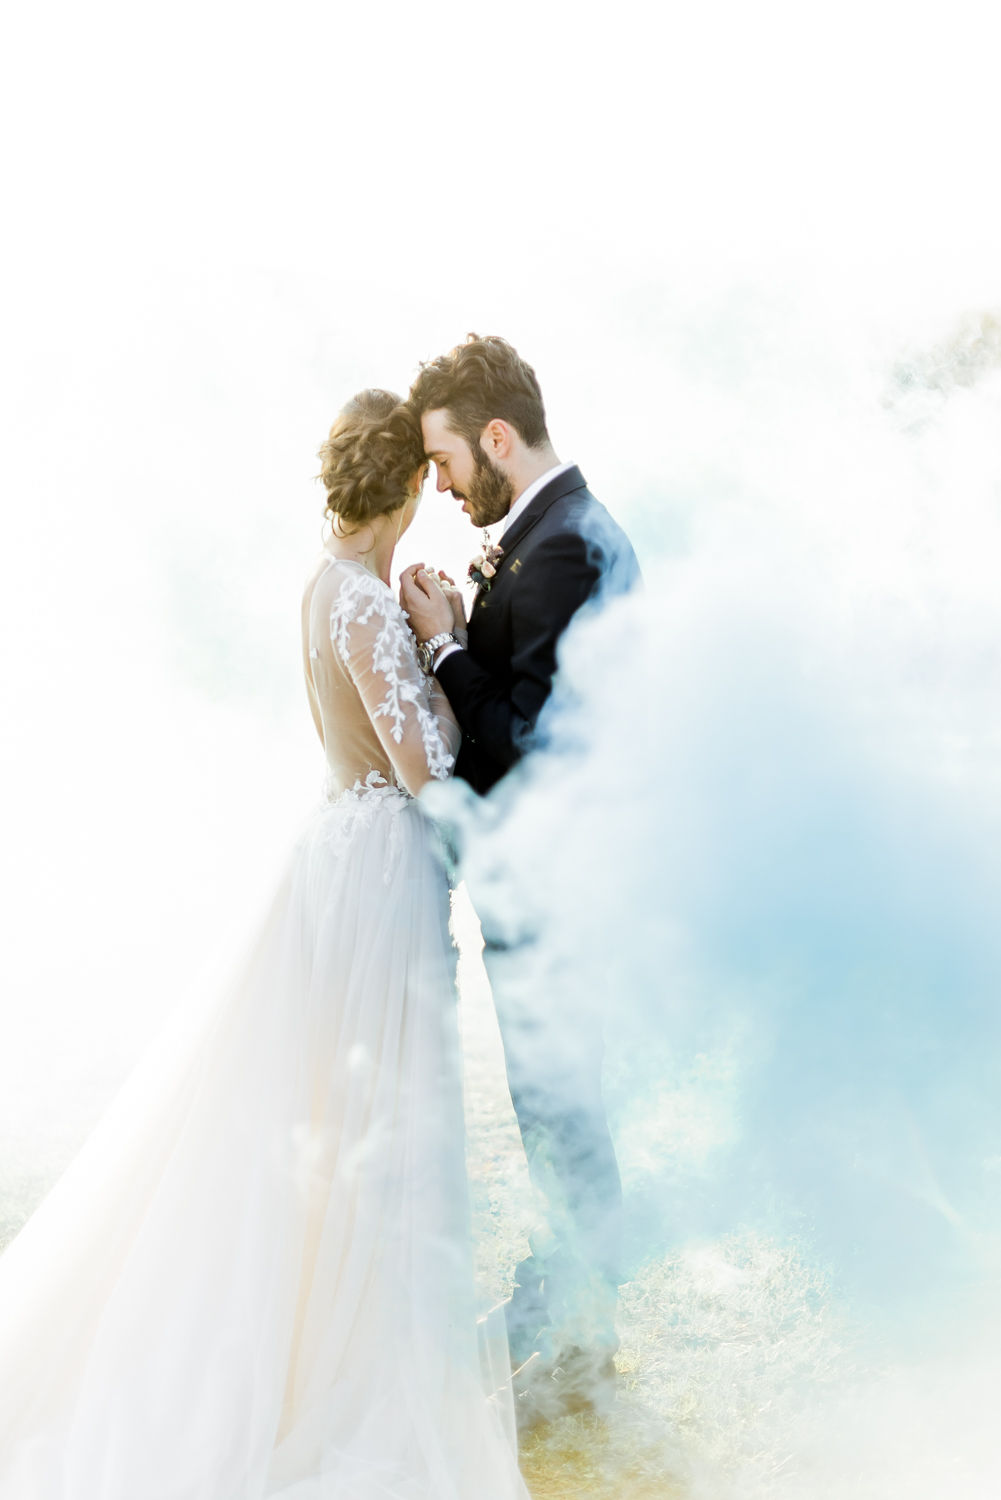 Smoke bomb with the bride and groom